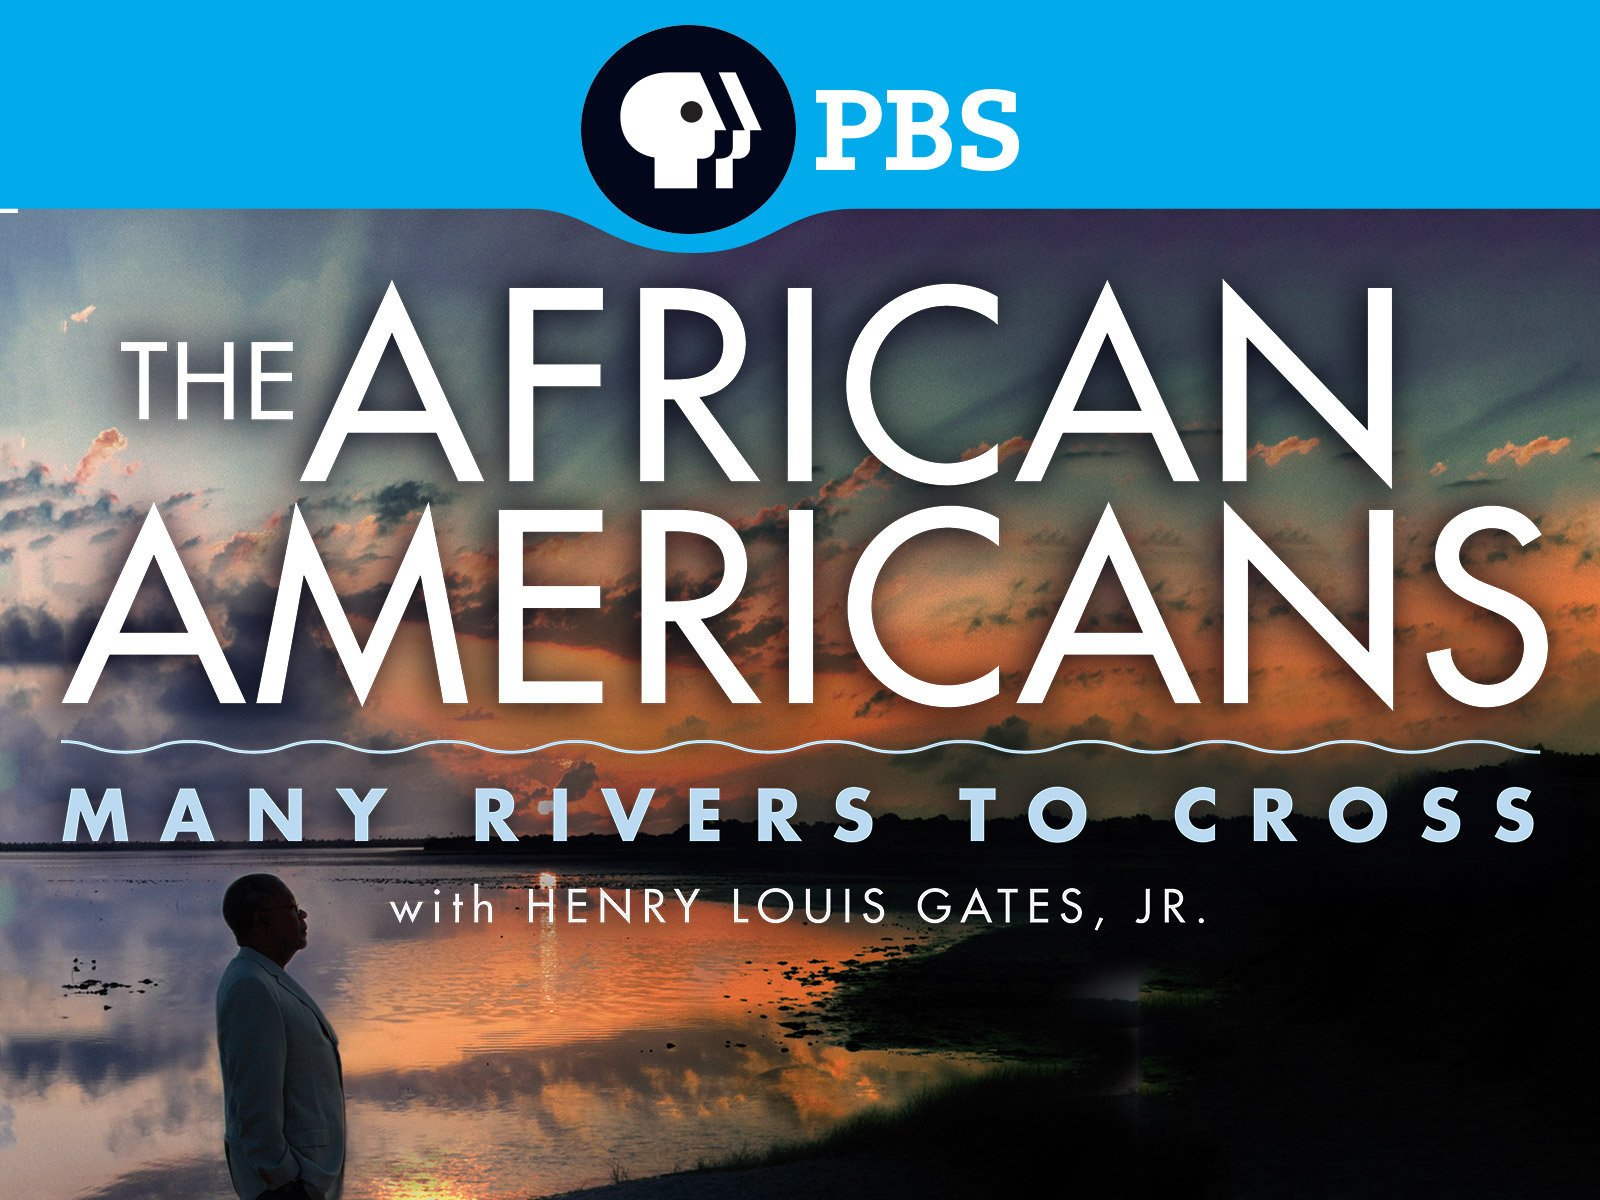 black history movies-the african americas many rivers to cross